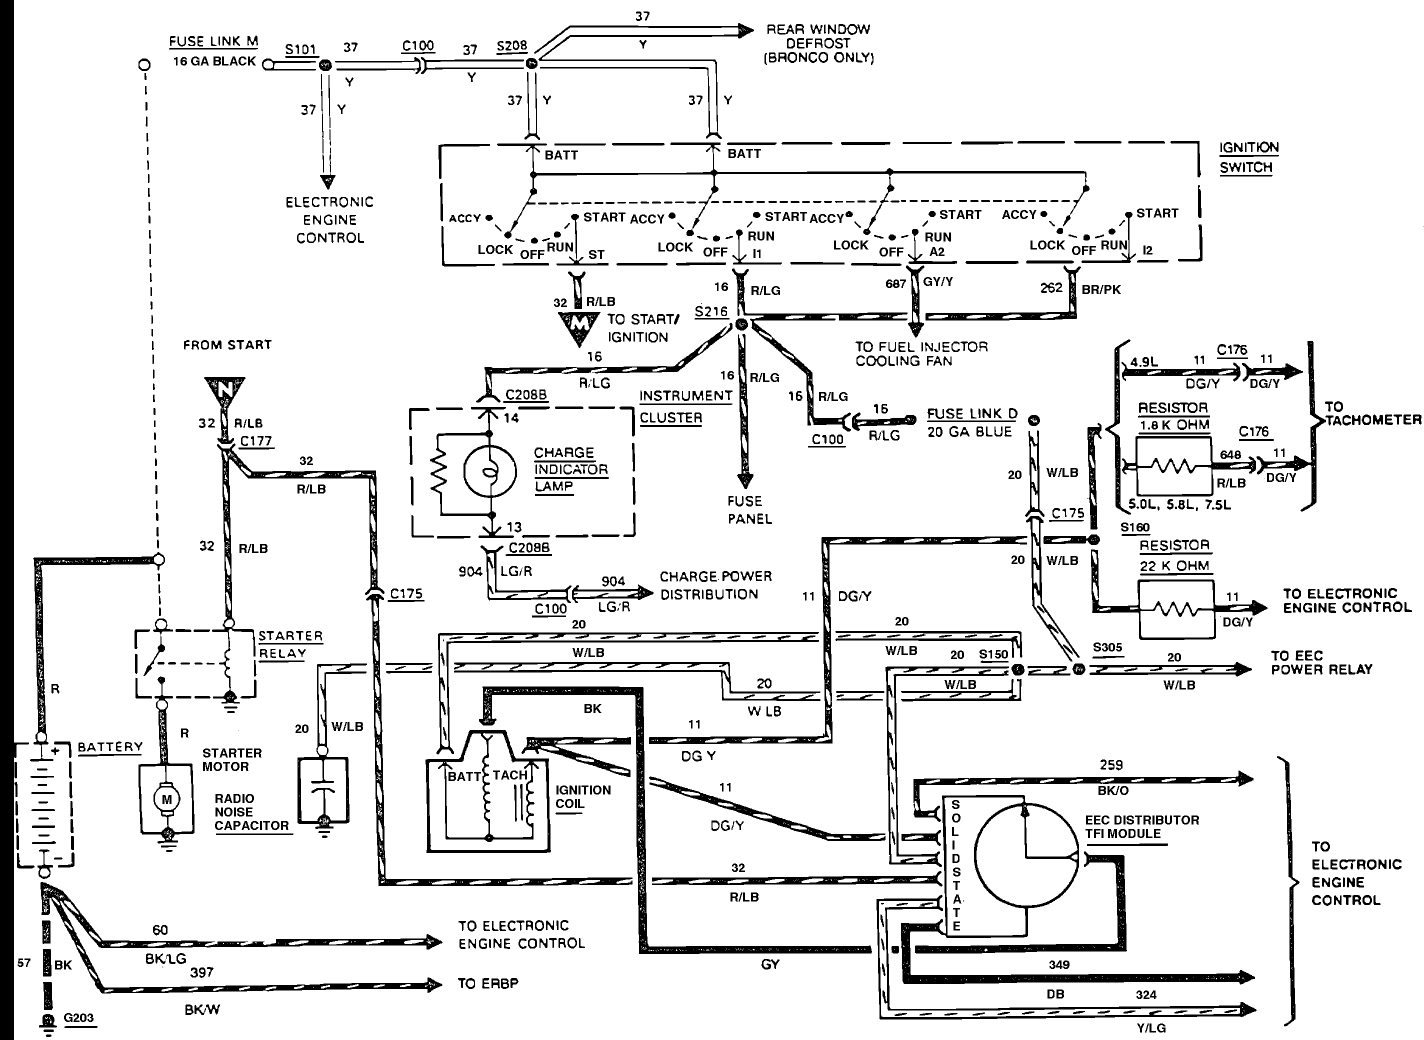 1989 ford f 350 wiring diagram wiring diagram 2006 f350 wiring diagram 1989 ford f 350 wiring diagram #2